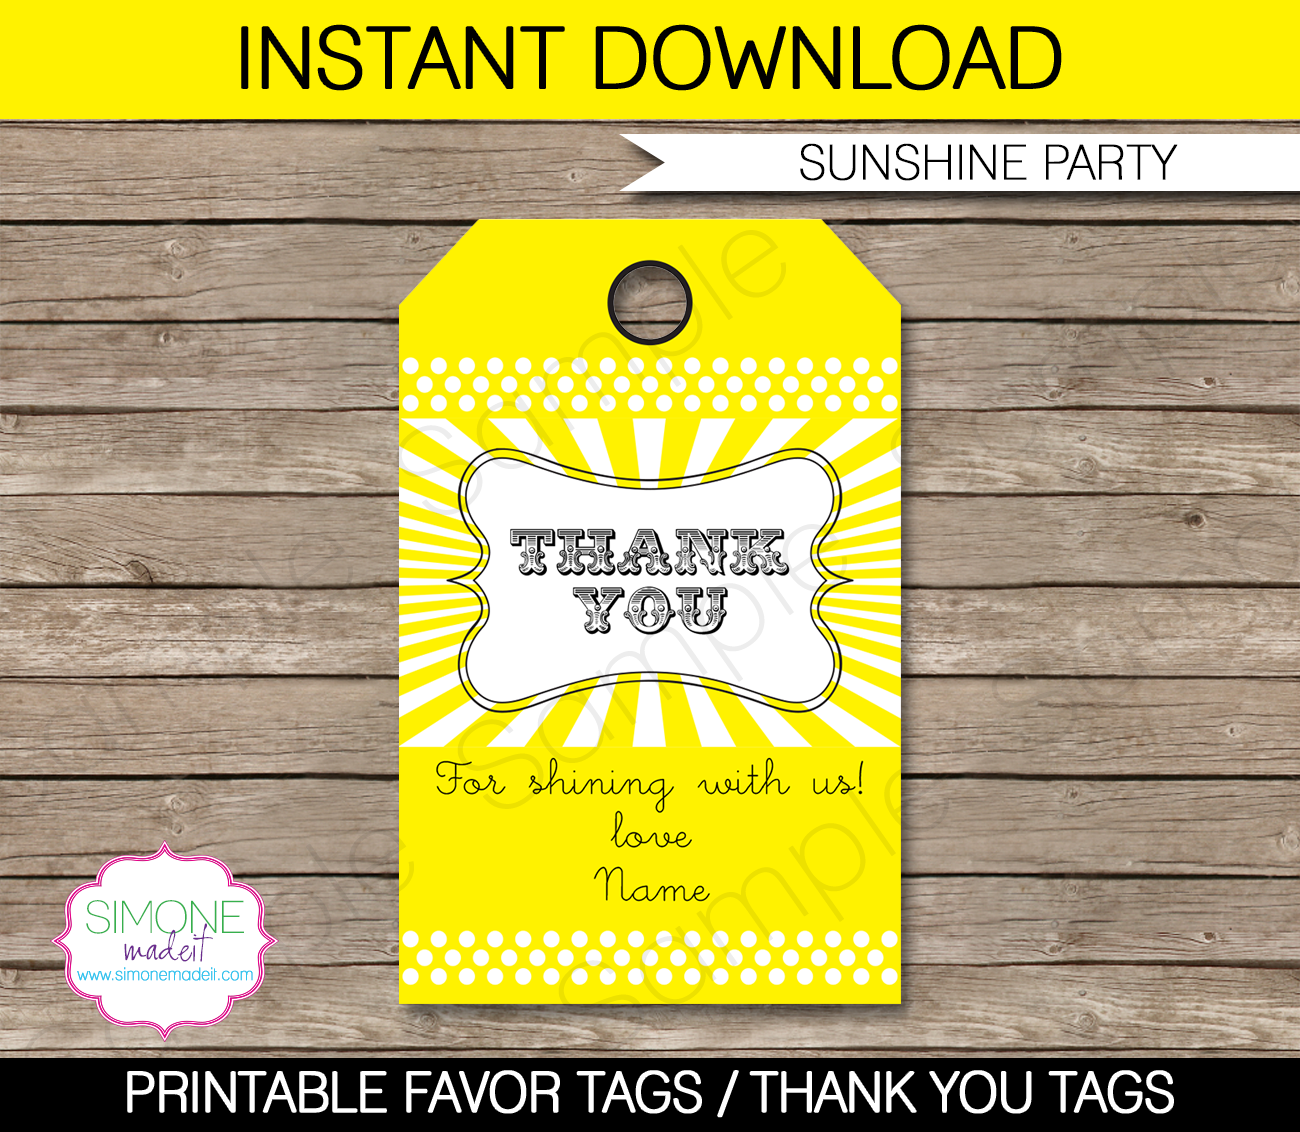 Sunshine Party Favor Tags | Thank You Tags | Birthday Party | Editable DIY Template | $3.00 INSTANT DOWNLOAD via SIMONEmadeit.com